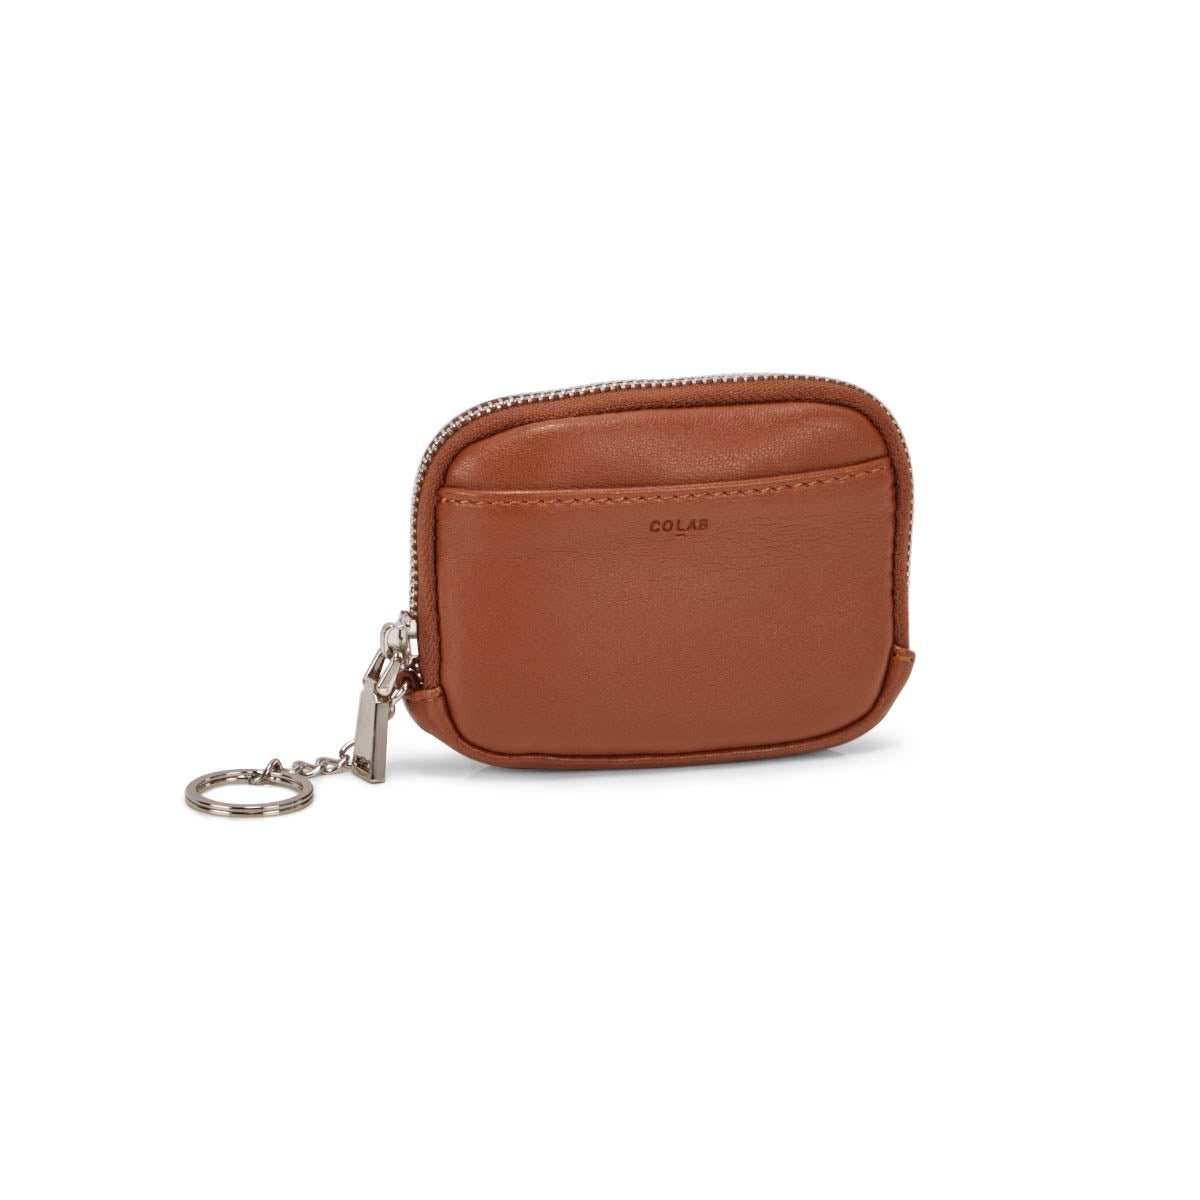 Lds auburn zip up wallet